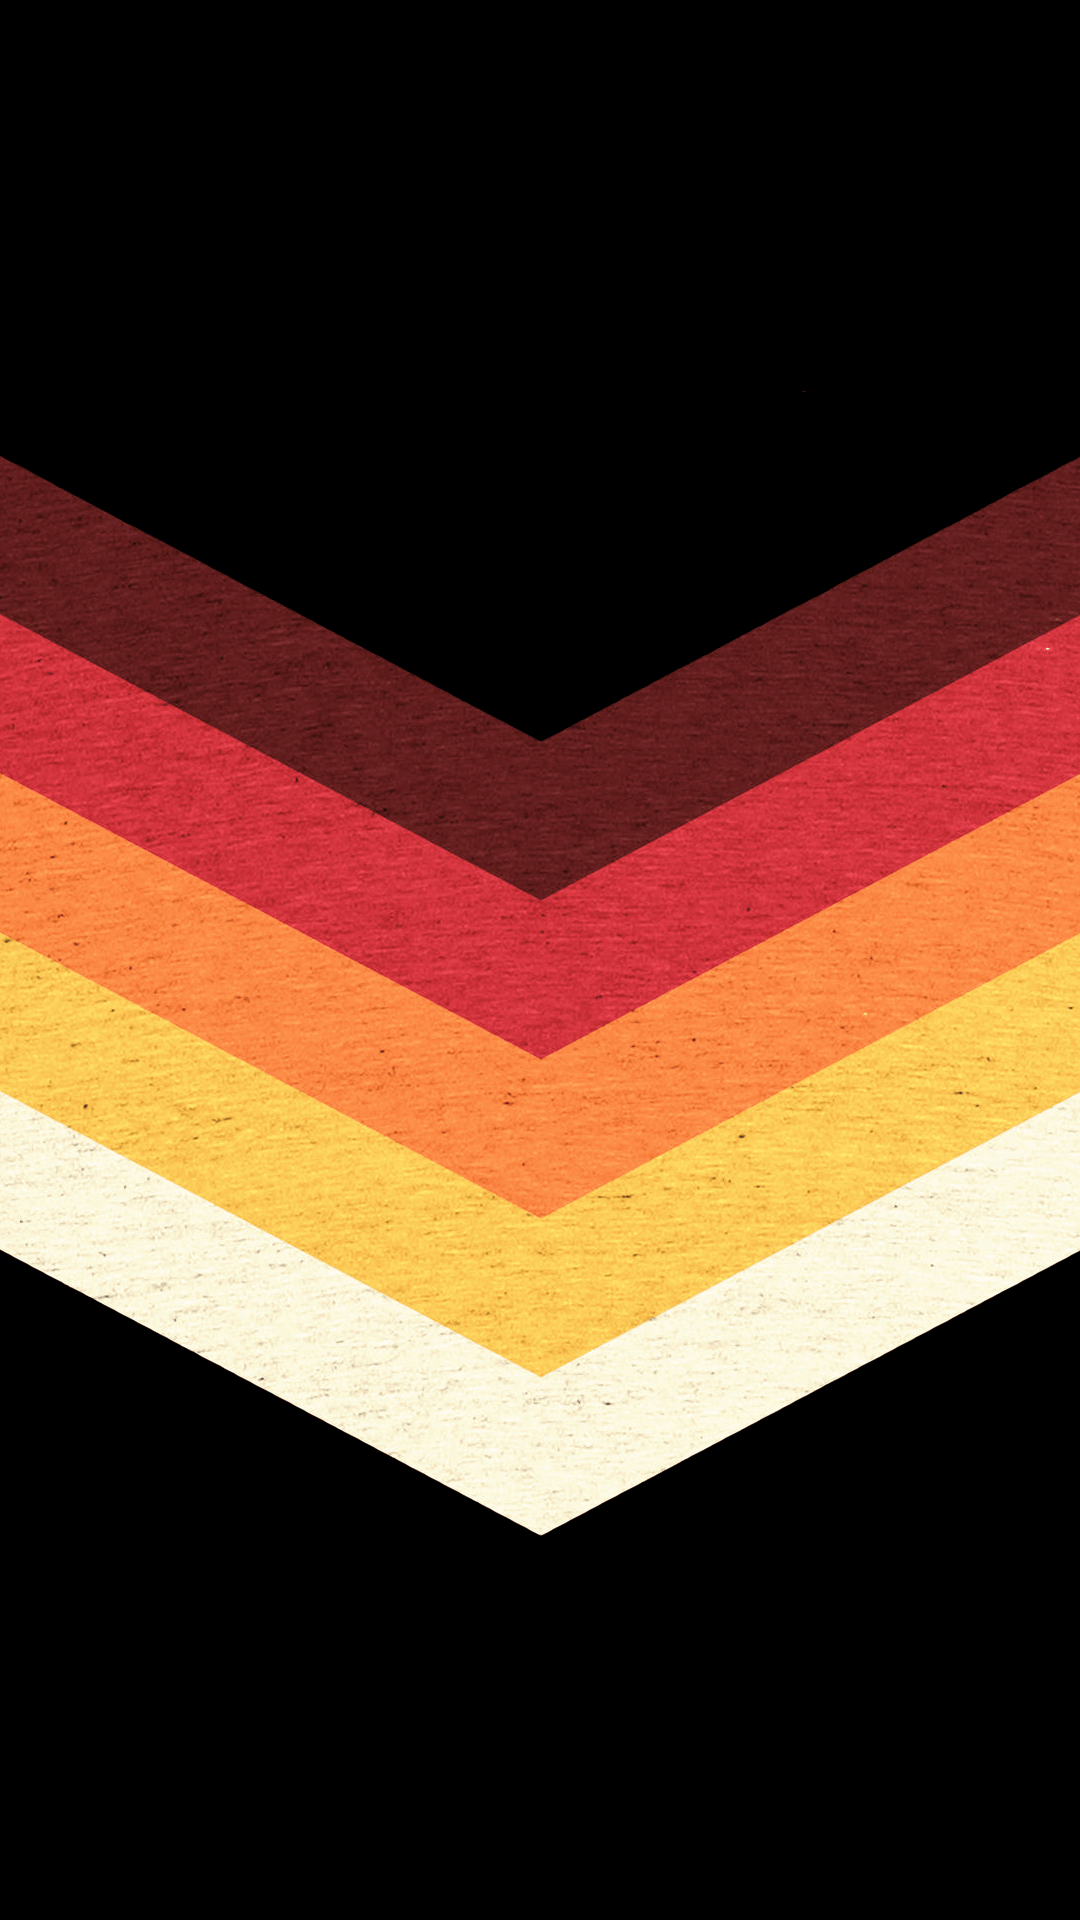 Chevron Wallpaper For Iphone 5 Official Mkbhd Wallpapers For Iphone Ipad Amp Desktop